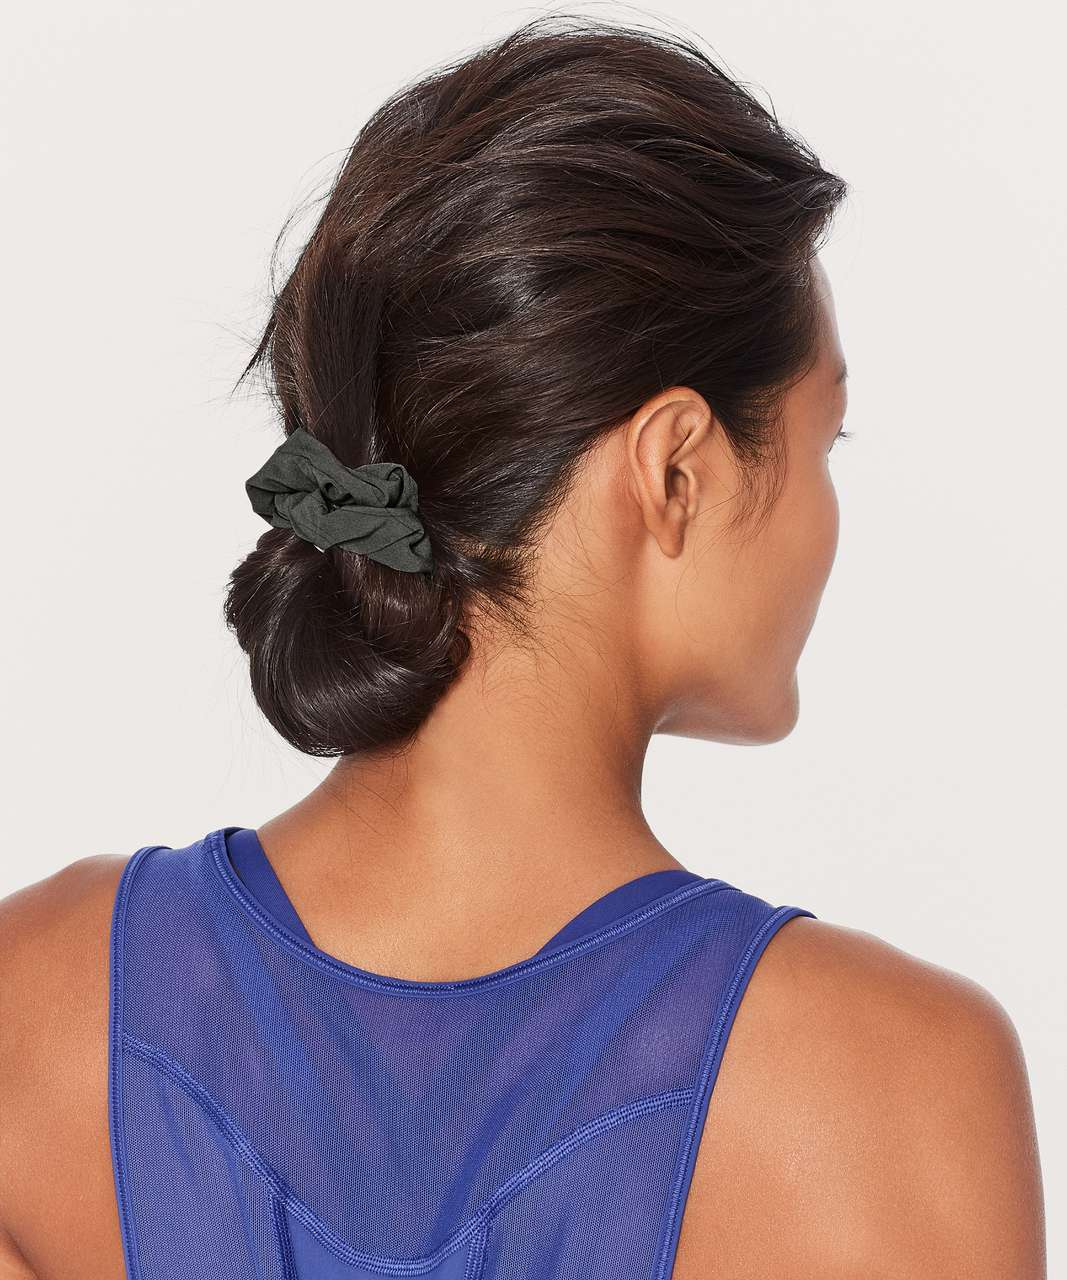 Lululemon Uplifting Scrunchie - Soot Light